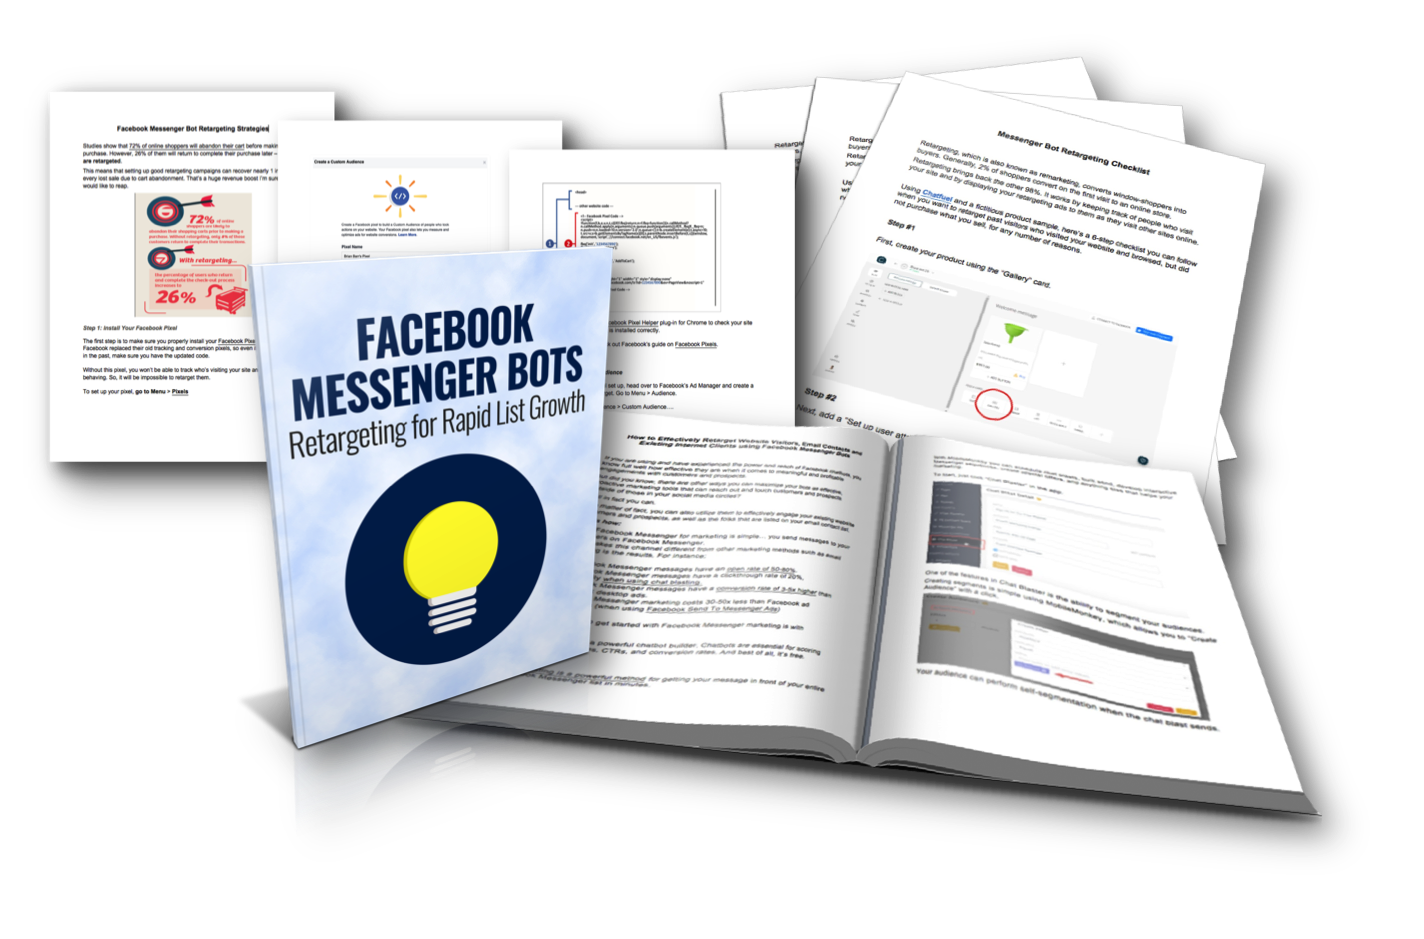 Facebook Messenger Bots Re-Targeting Strategies